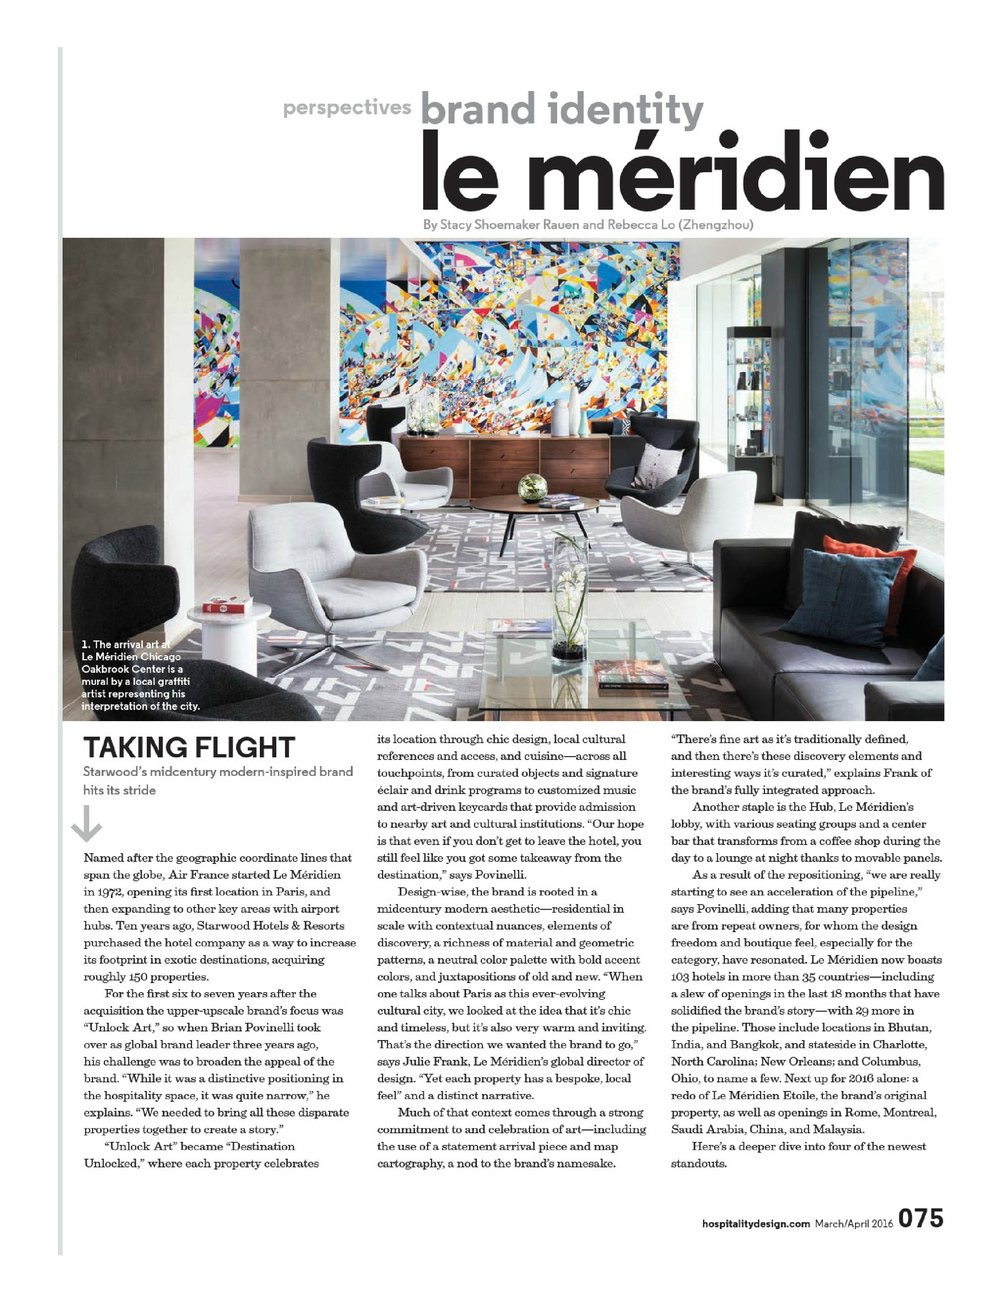 Hospitality Design_ March_April 2016_Le Meridien brand story-3.jpg